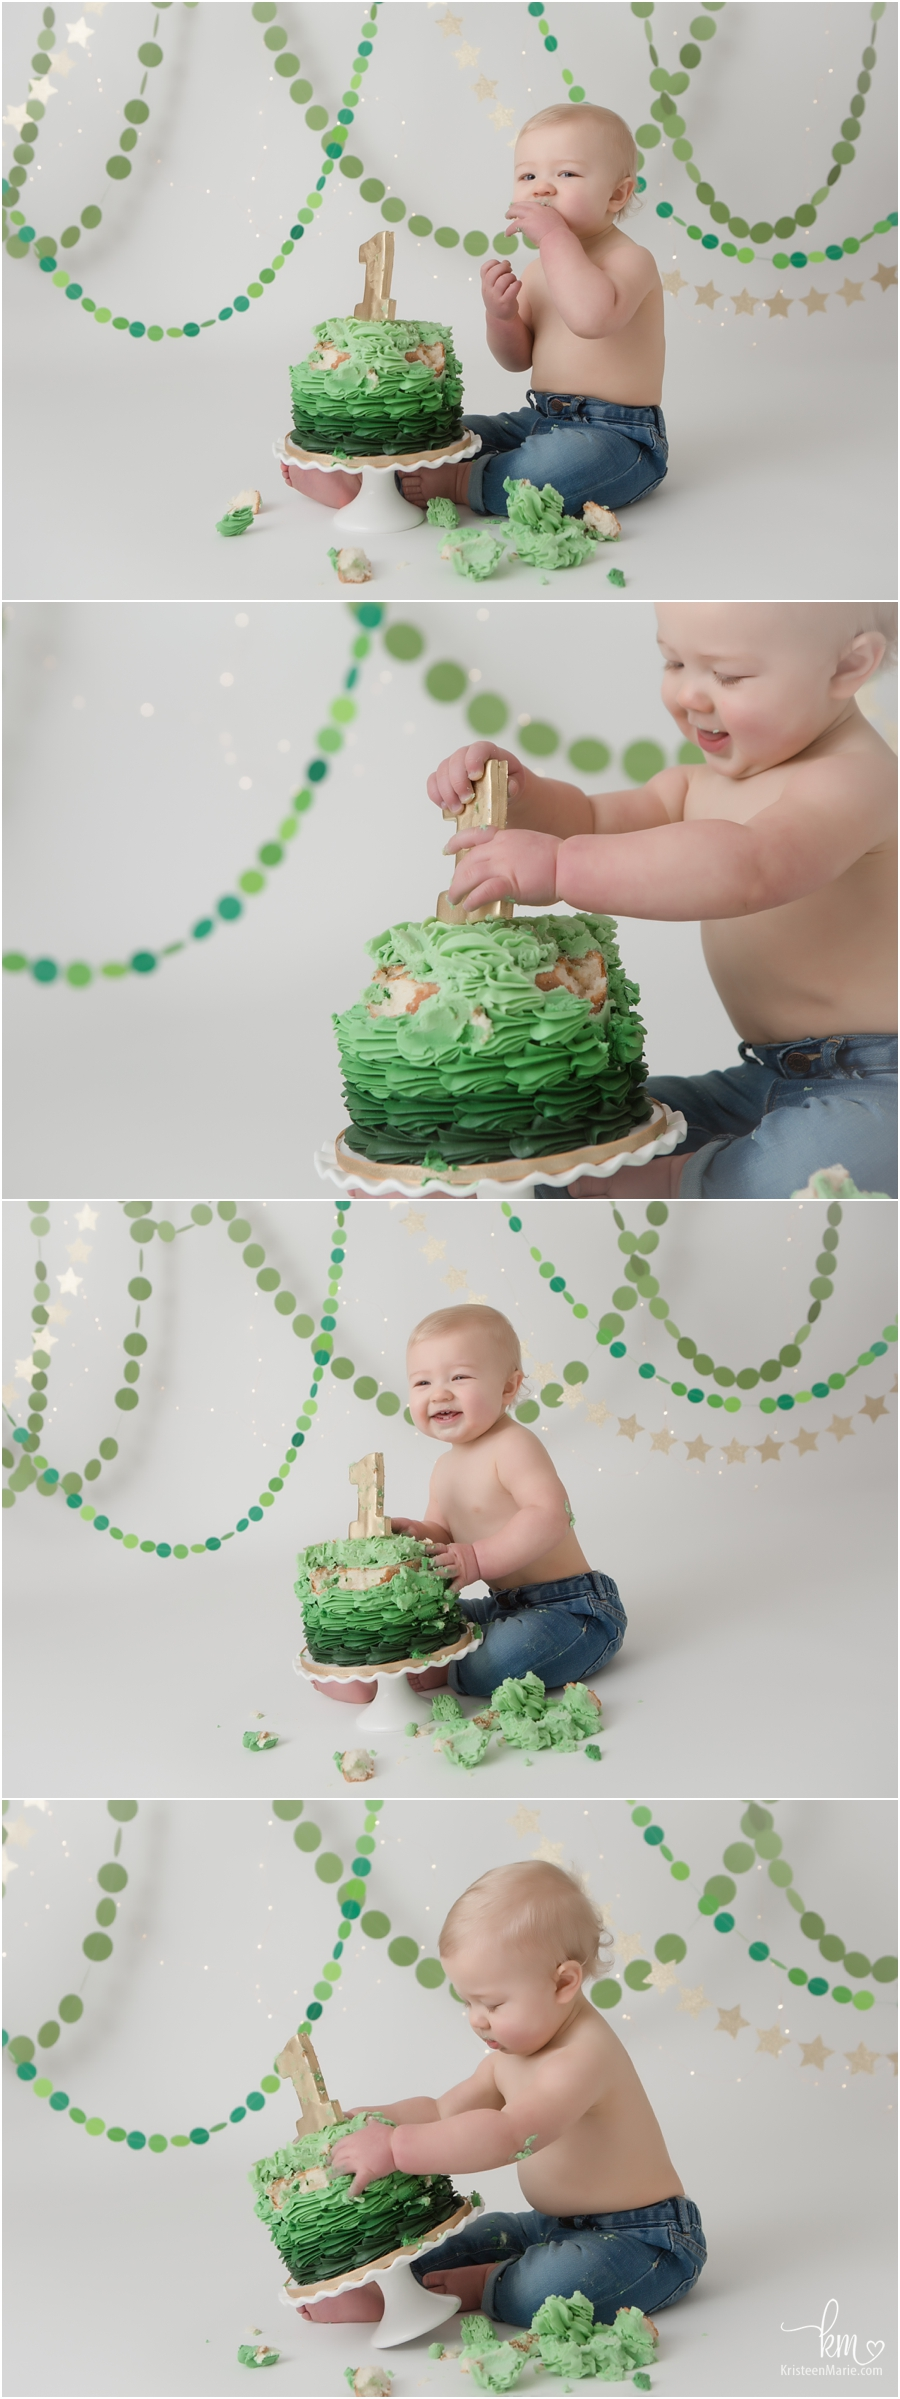 1st birthday cake smash photography sessin in Indianapolis, IN